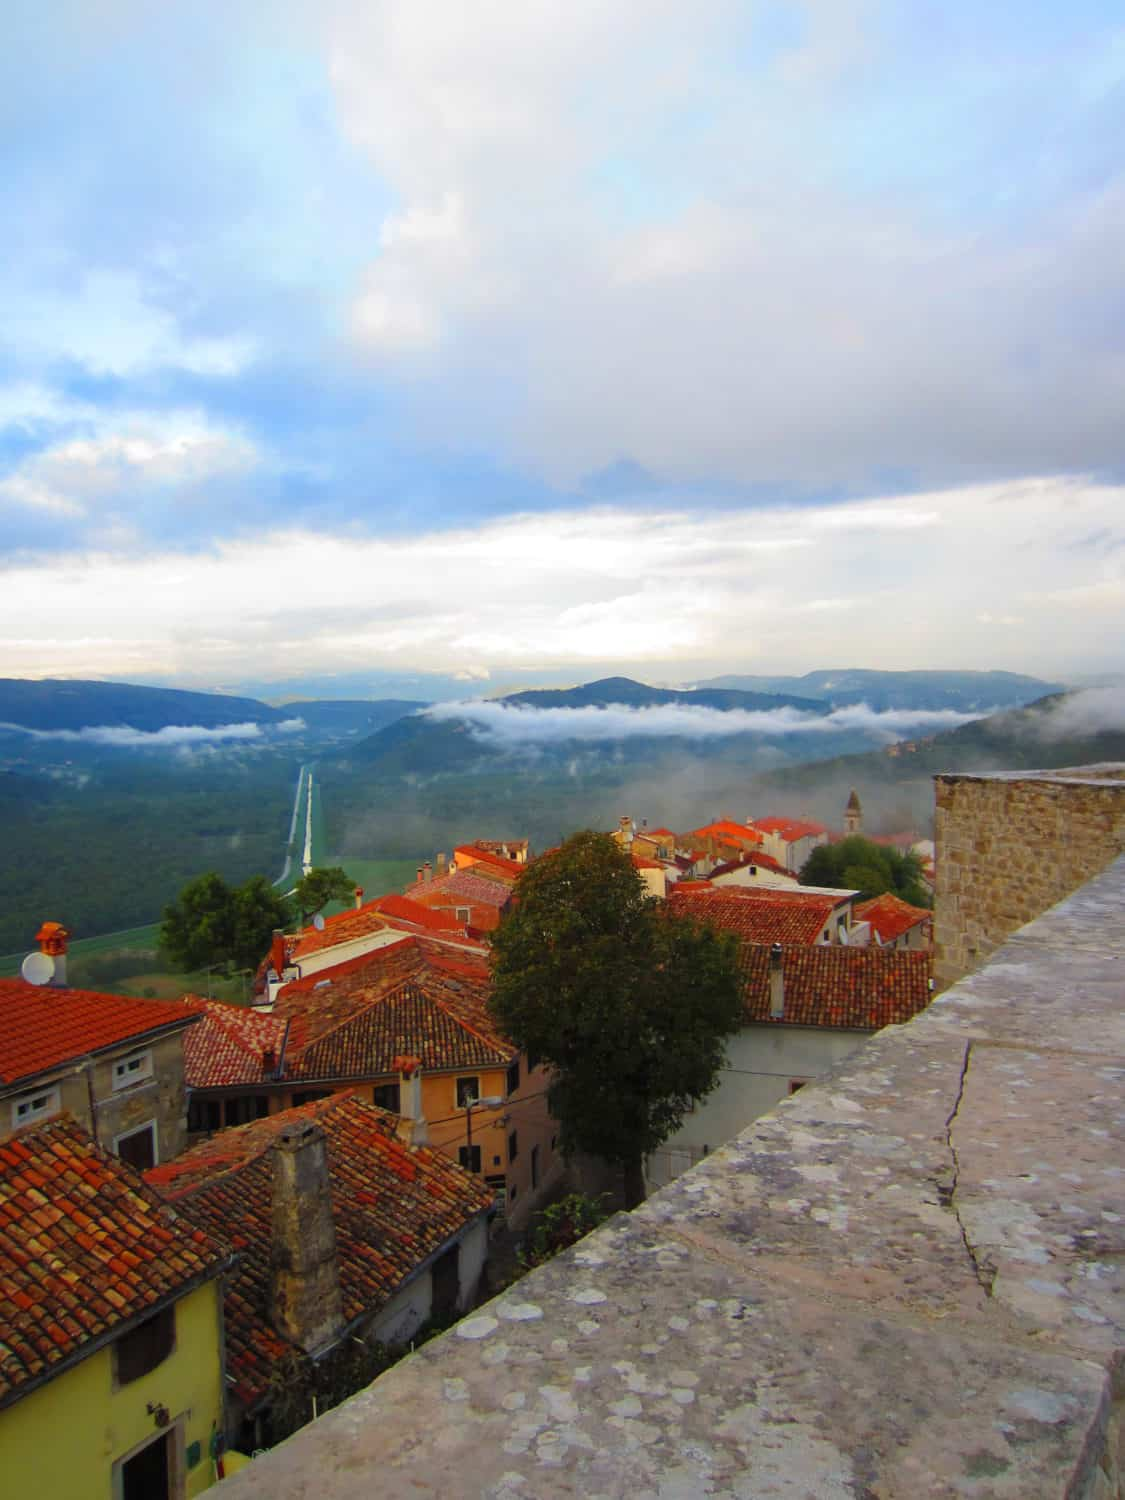 misty view from the historic town walls